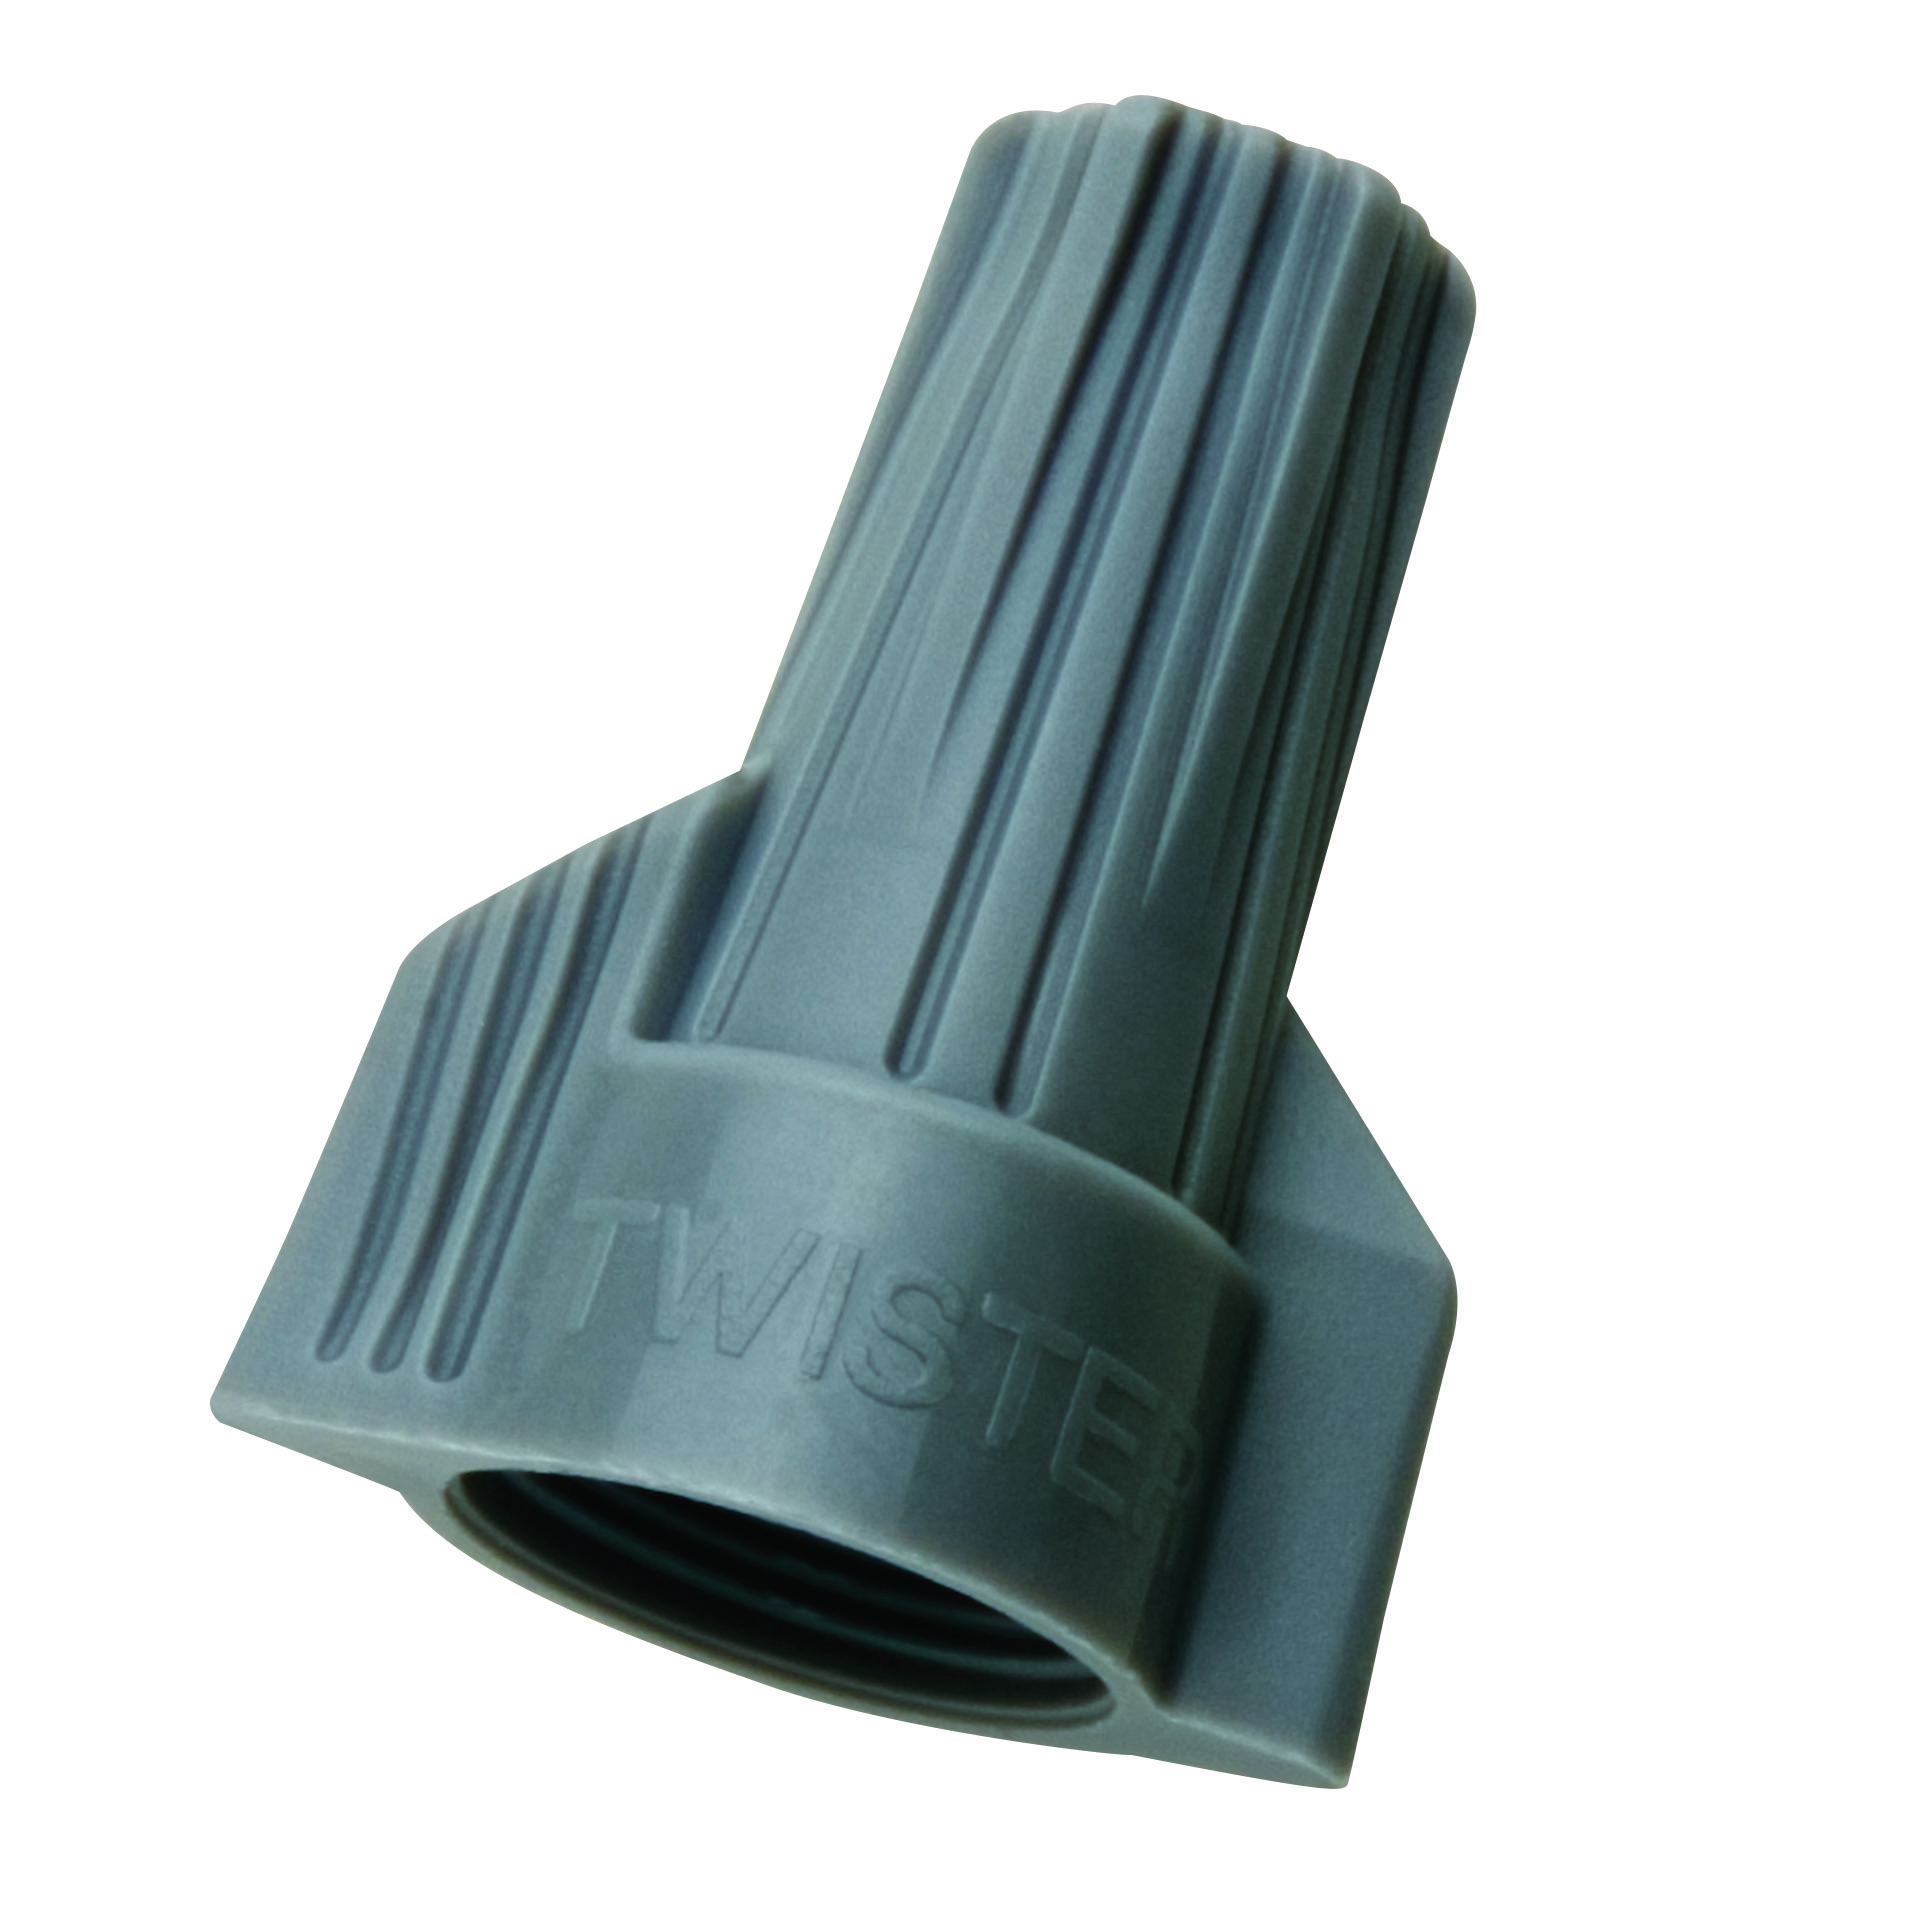 Pack of 50 Gray Ideal 30-342 Twister 342 Wire Connector